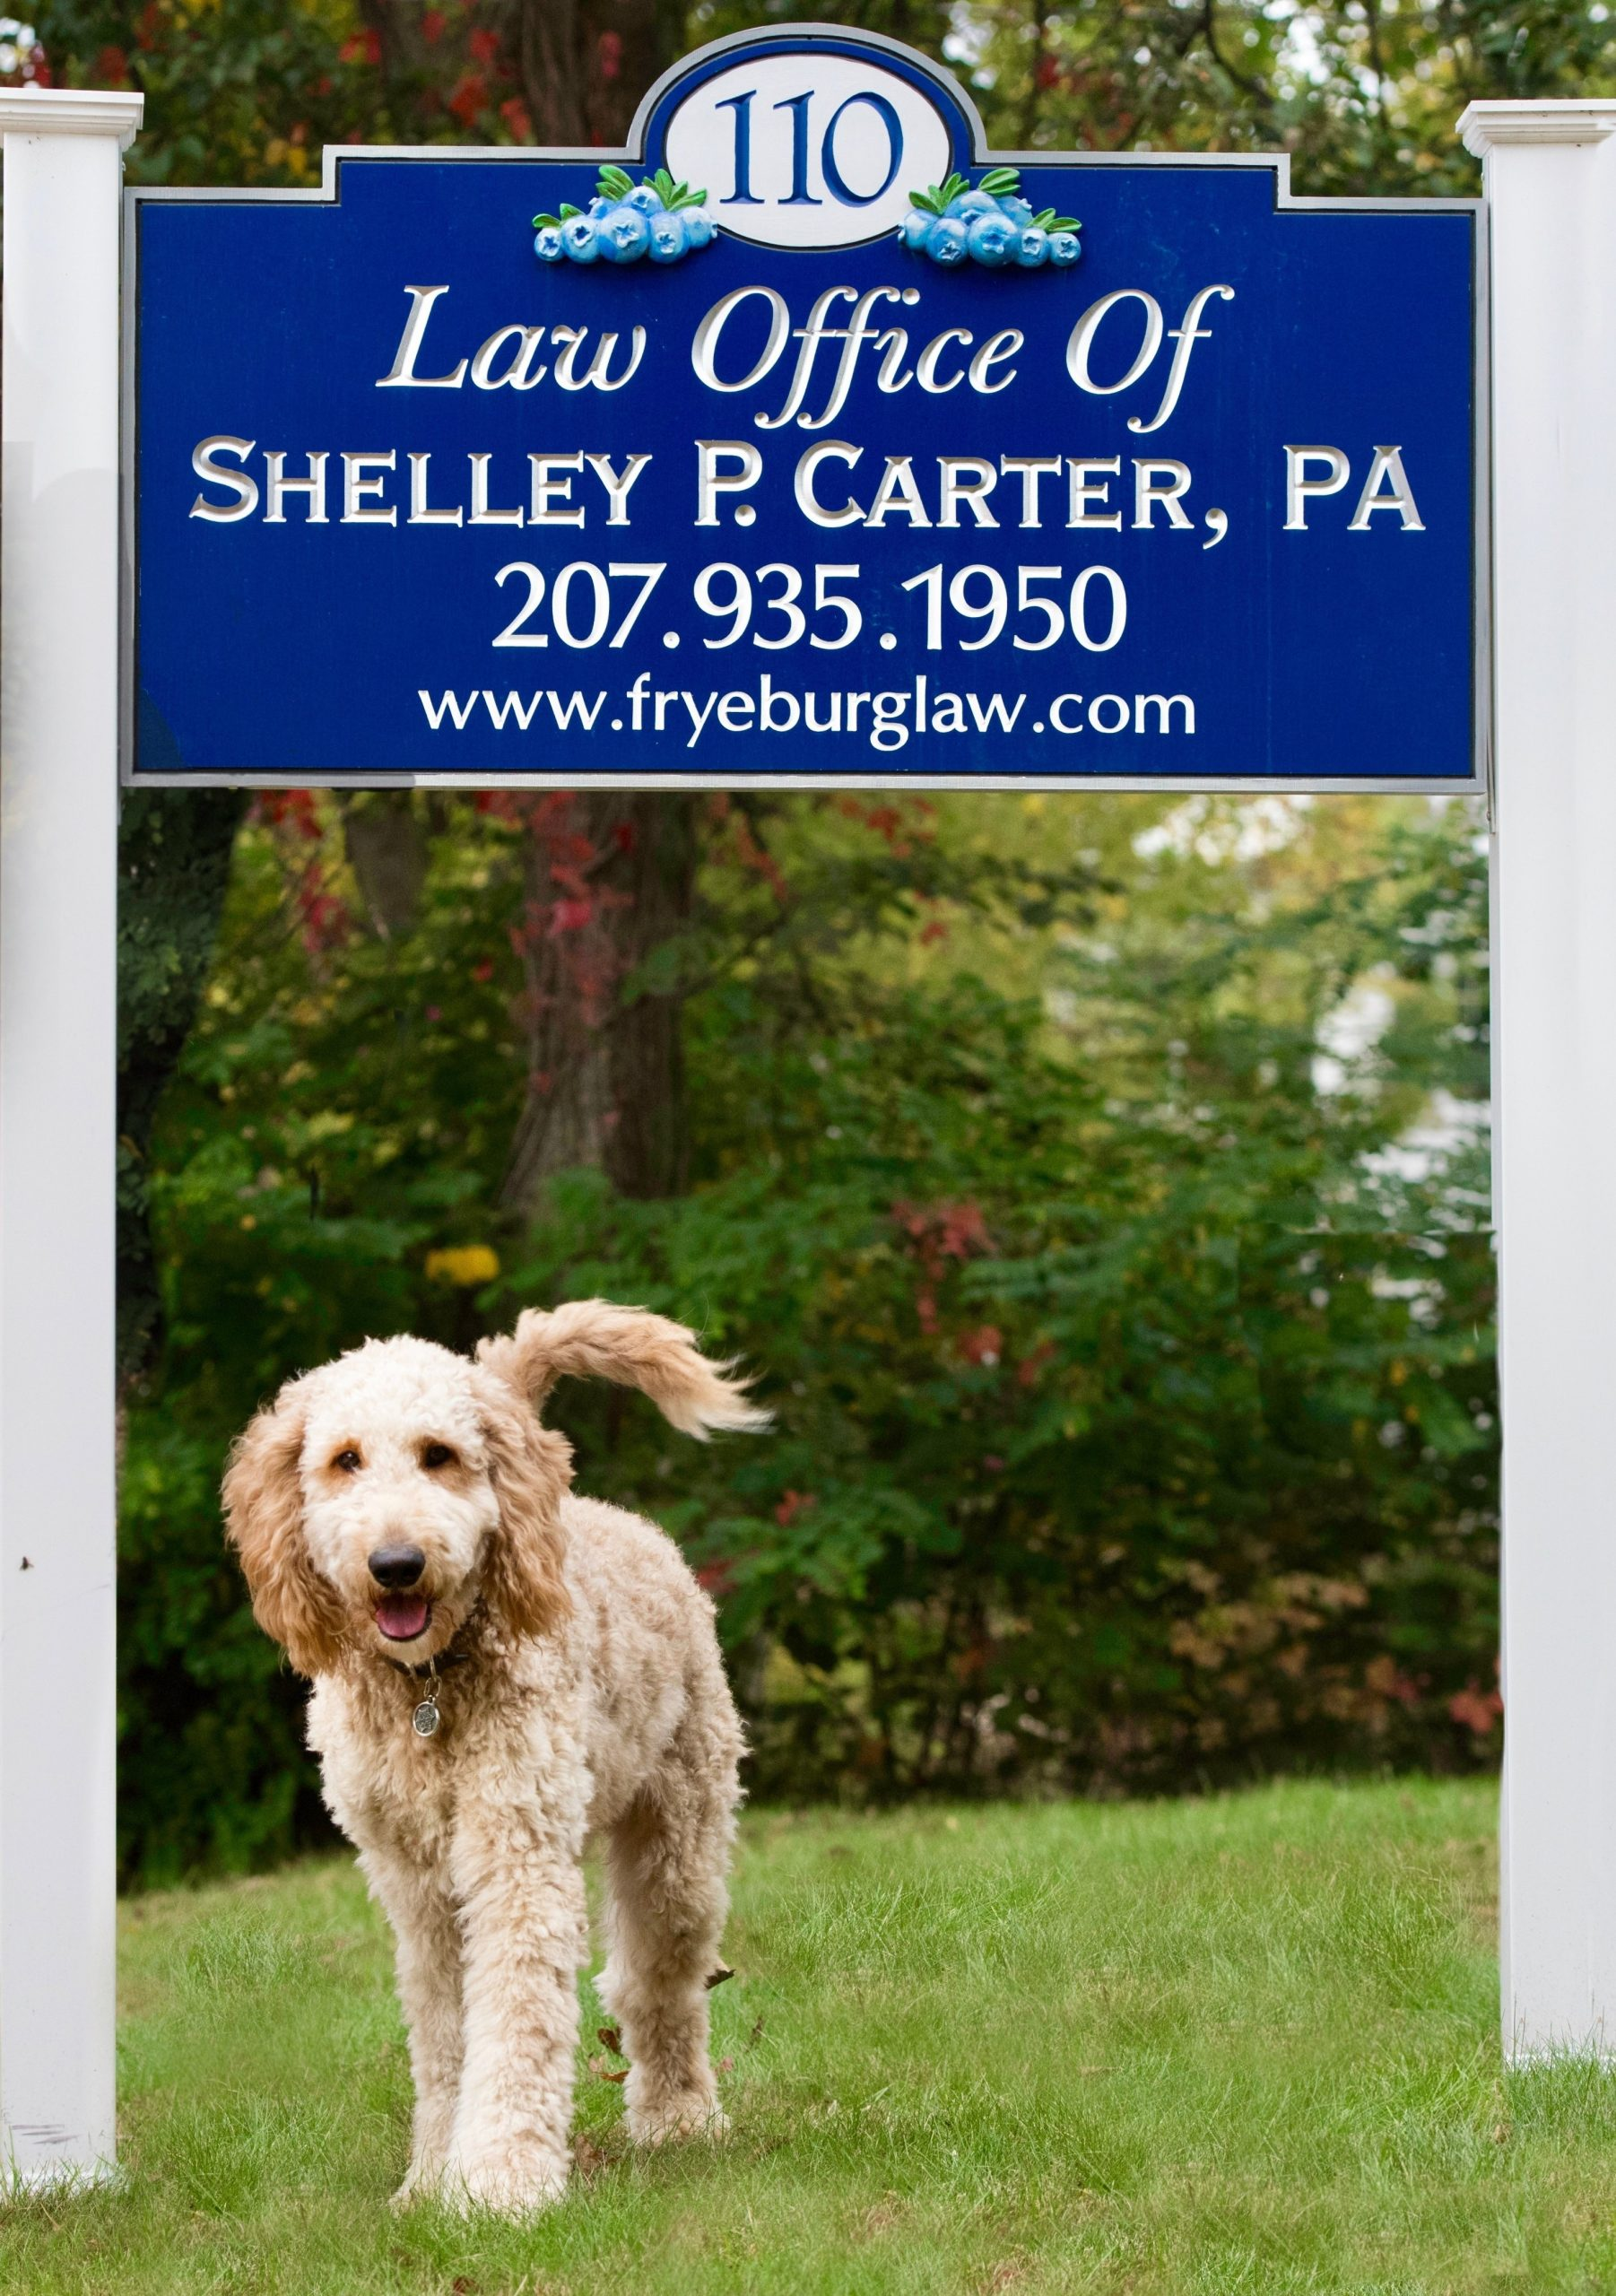 Baxter's business card